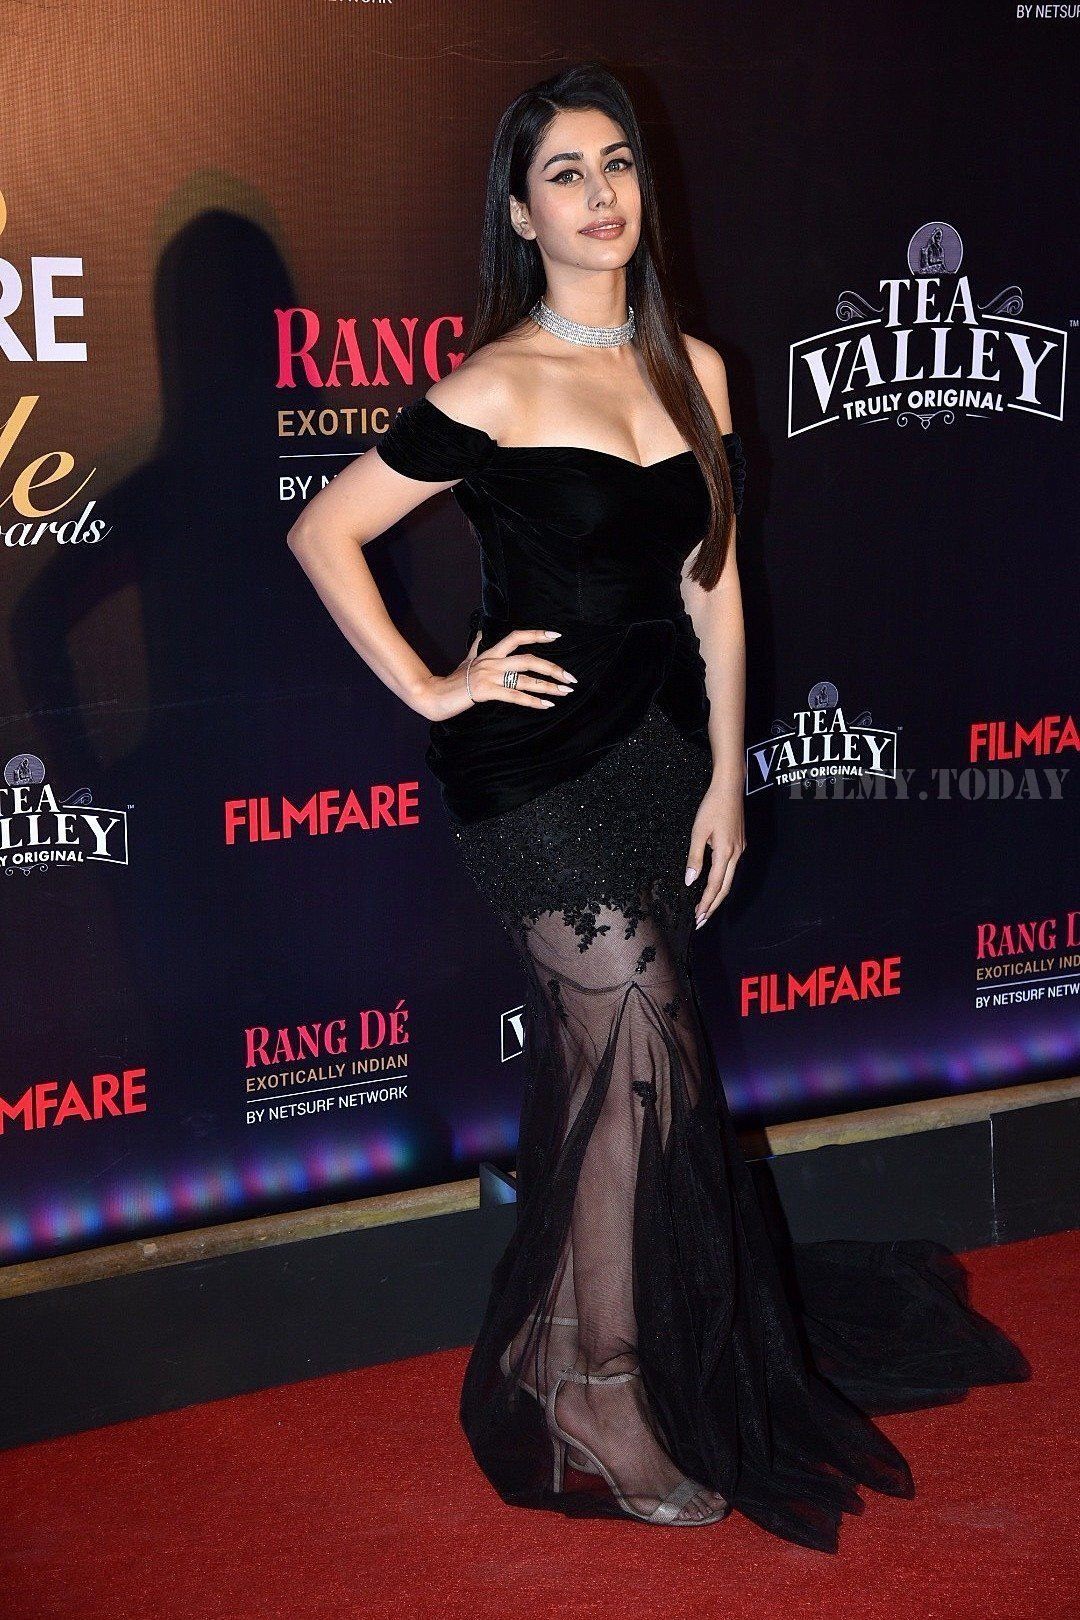 Warina Hussain Photos Red Carpet Of Filmfare Glamour And Style Awards 2019 Bollywood Girls Indian Bollywood Actress Beautiful Indian Actress